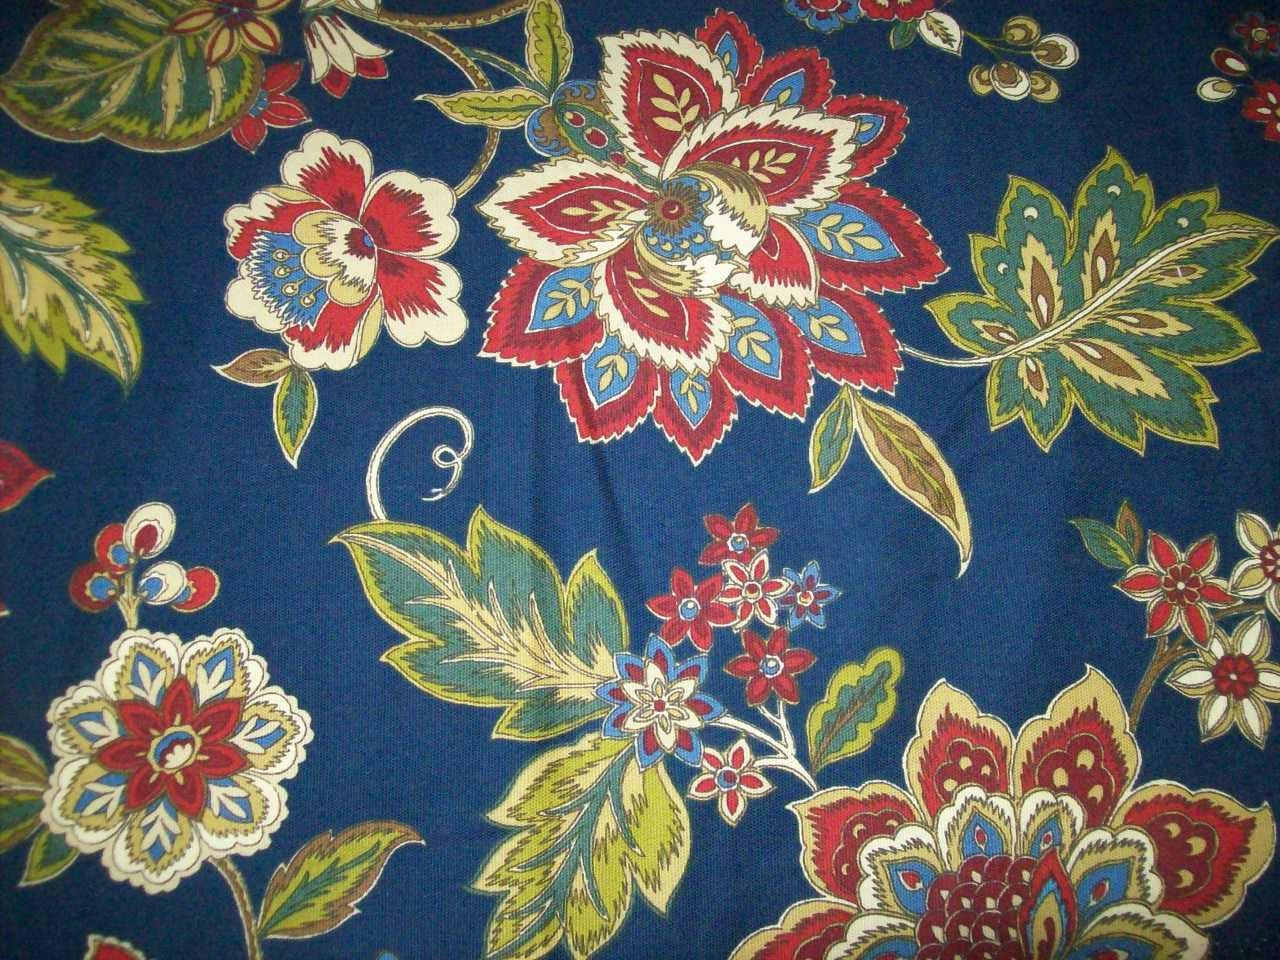 Floral upholstery fabric by the yard for home decor for Home decorating fabric by the yard